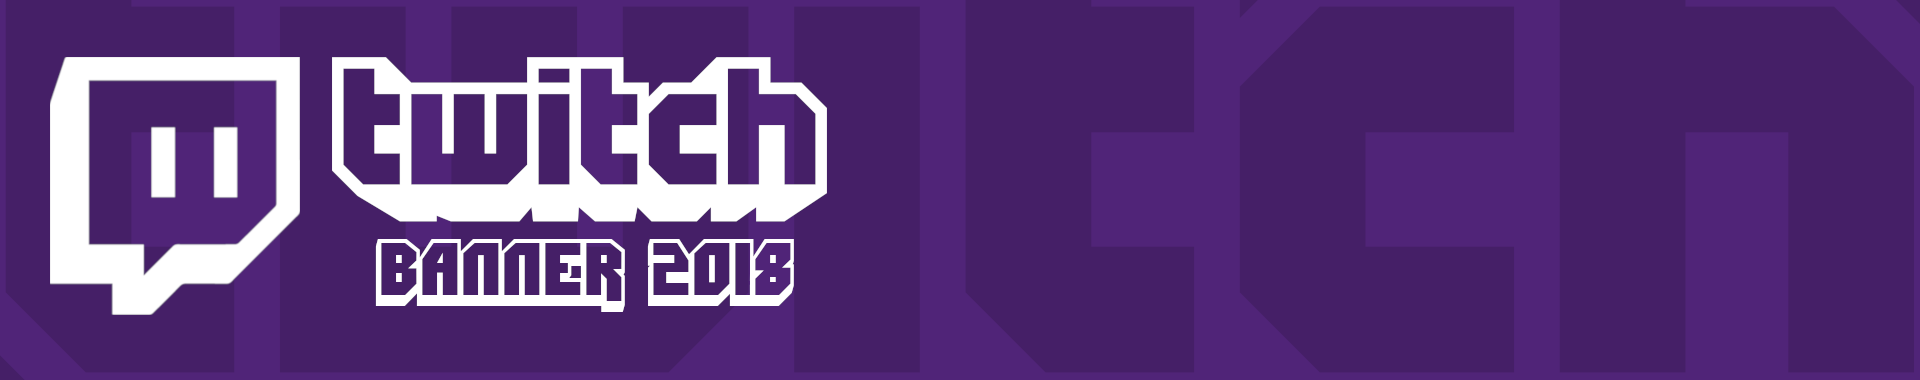 Twitch Banner template 2018